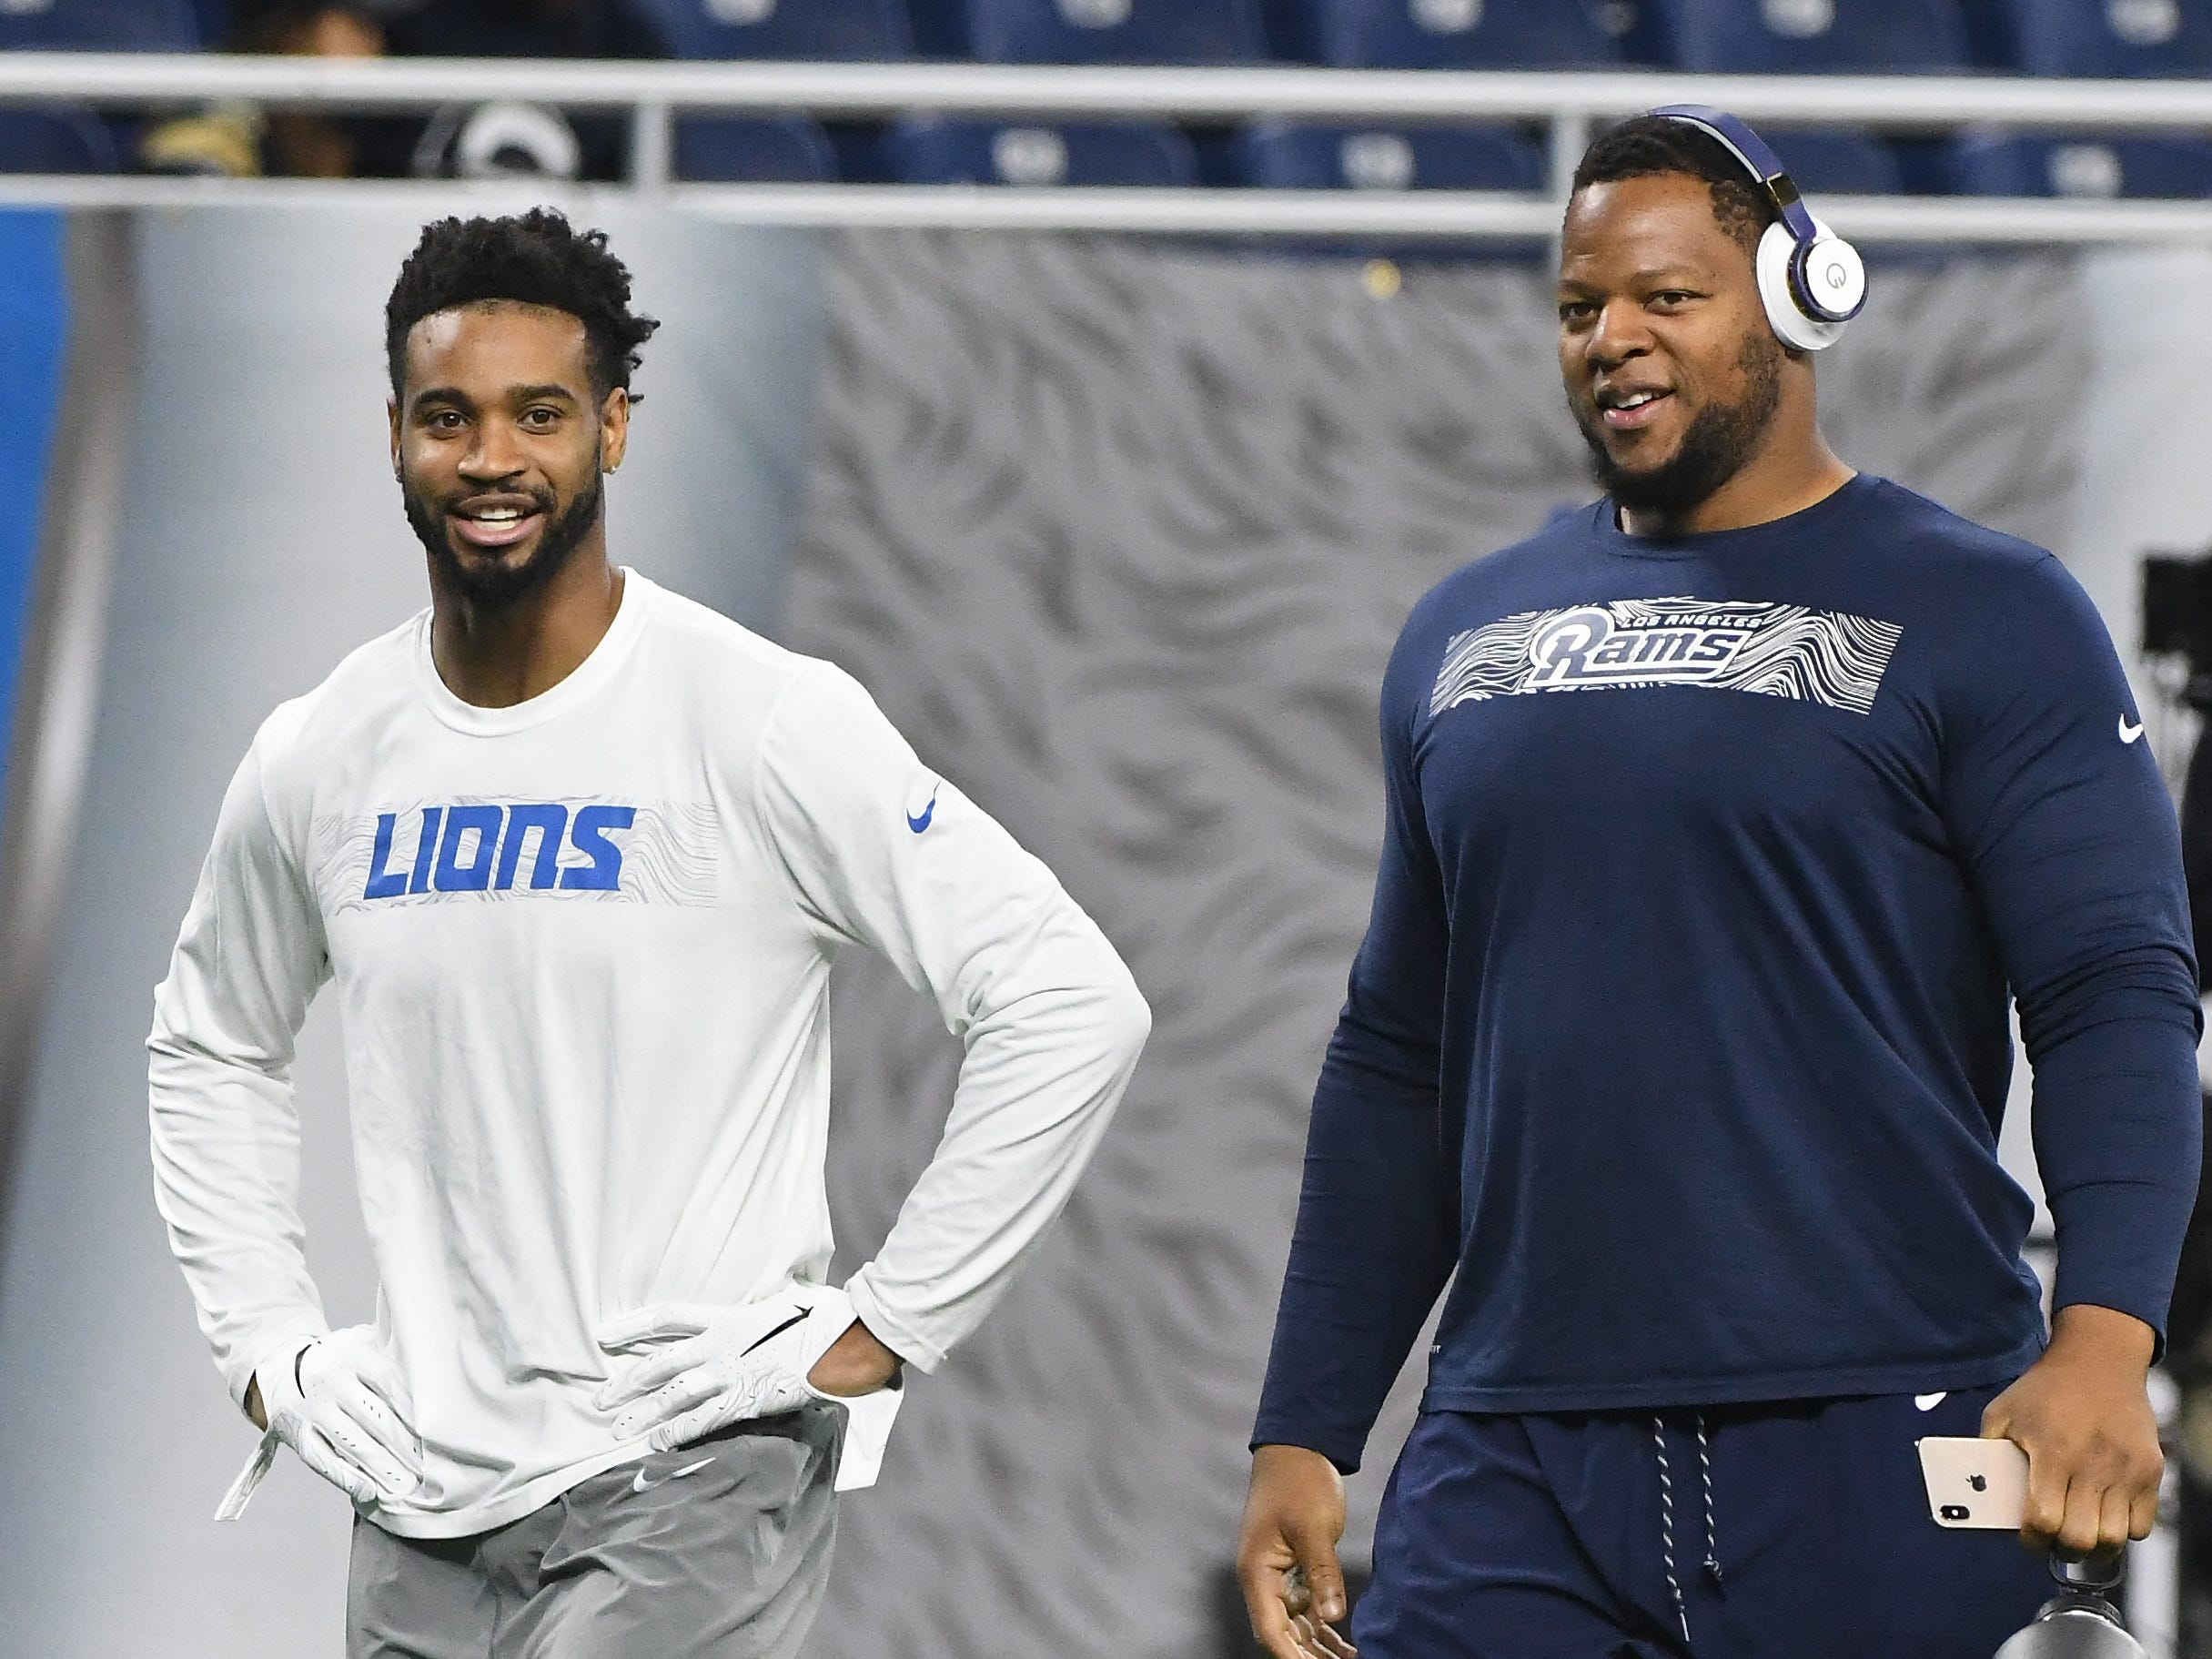 Lions' cornerback Darius Slay and former Detroit Lions, Los Angeles defensive tackle Ndamukong Suh chat as they leave the field before Detroit takes on the Rams at Ford Field in Detroit, Michigan on December 2, 2018.